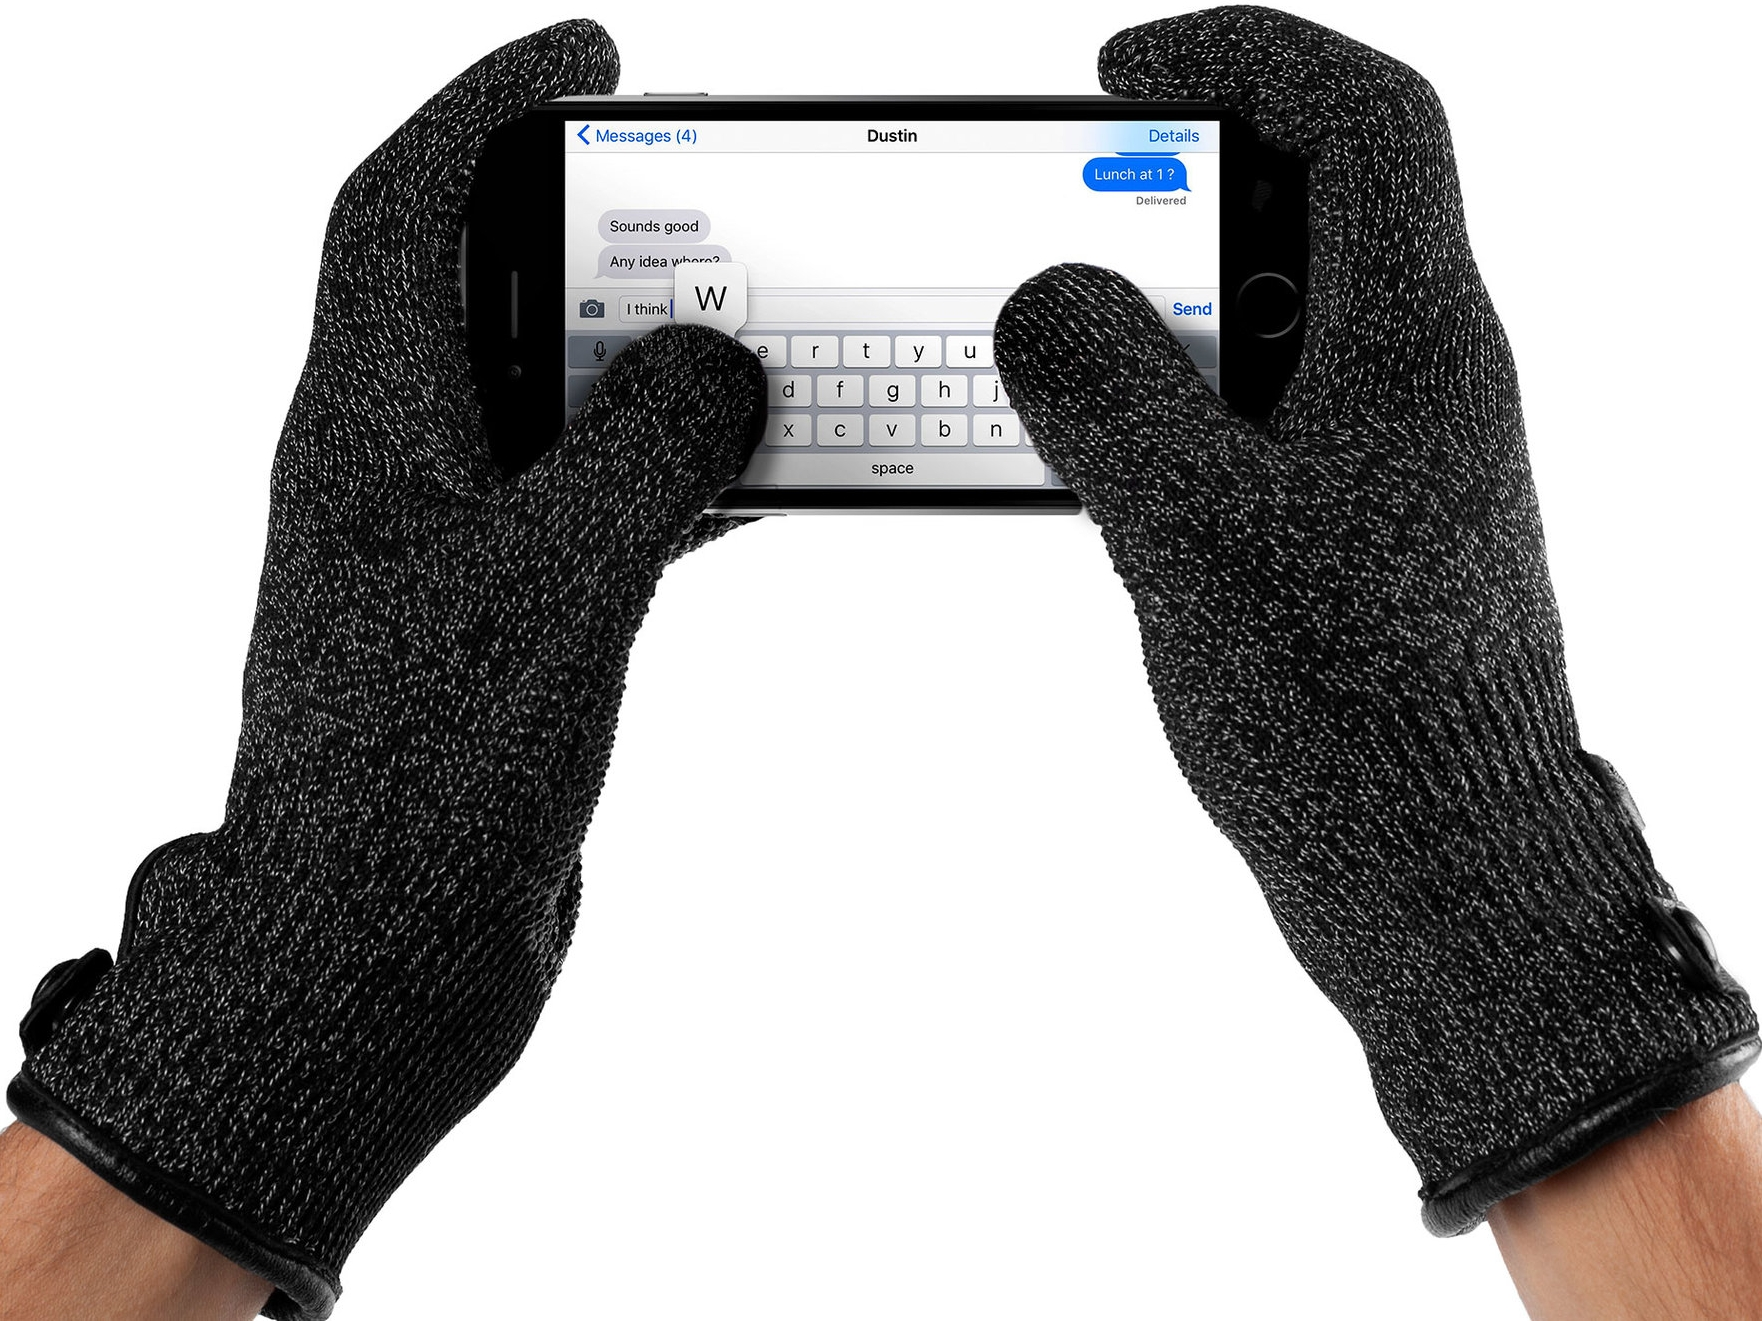 Mujjo Double Layered Touchscreen Gloves, €28.88